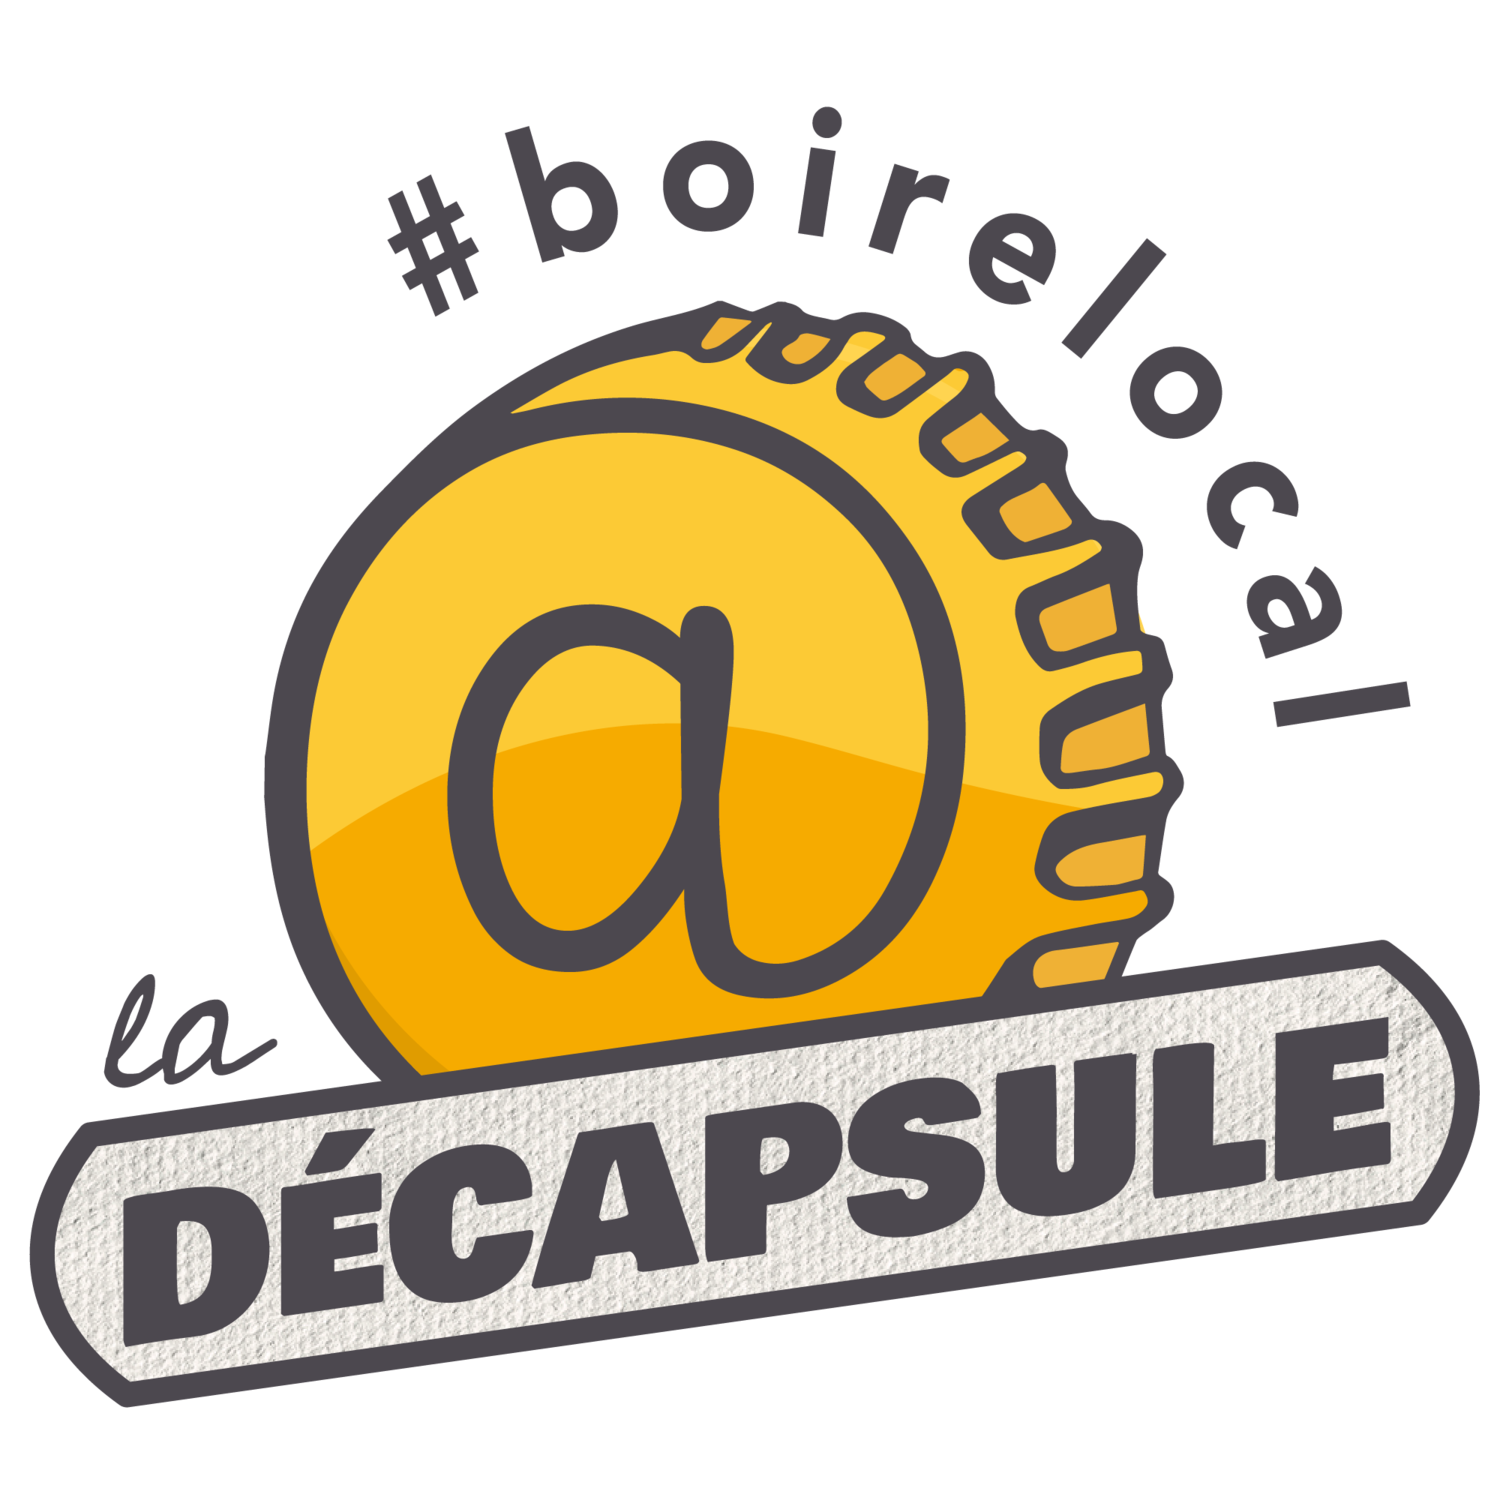 La Décapsule: boire local